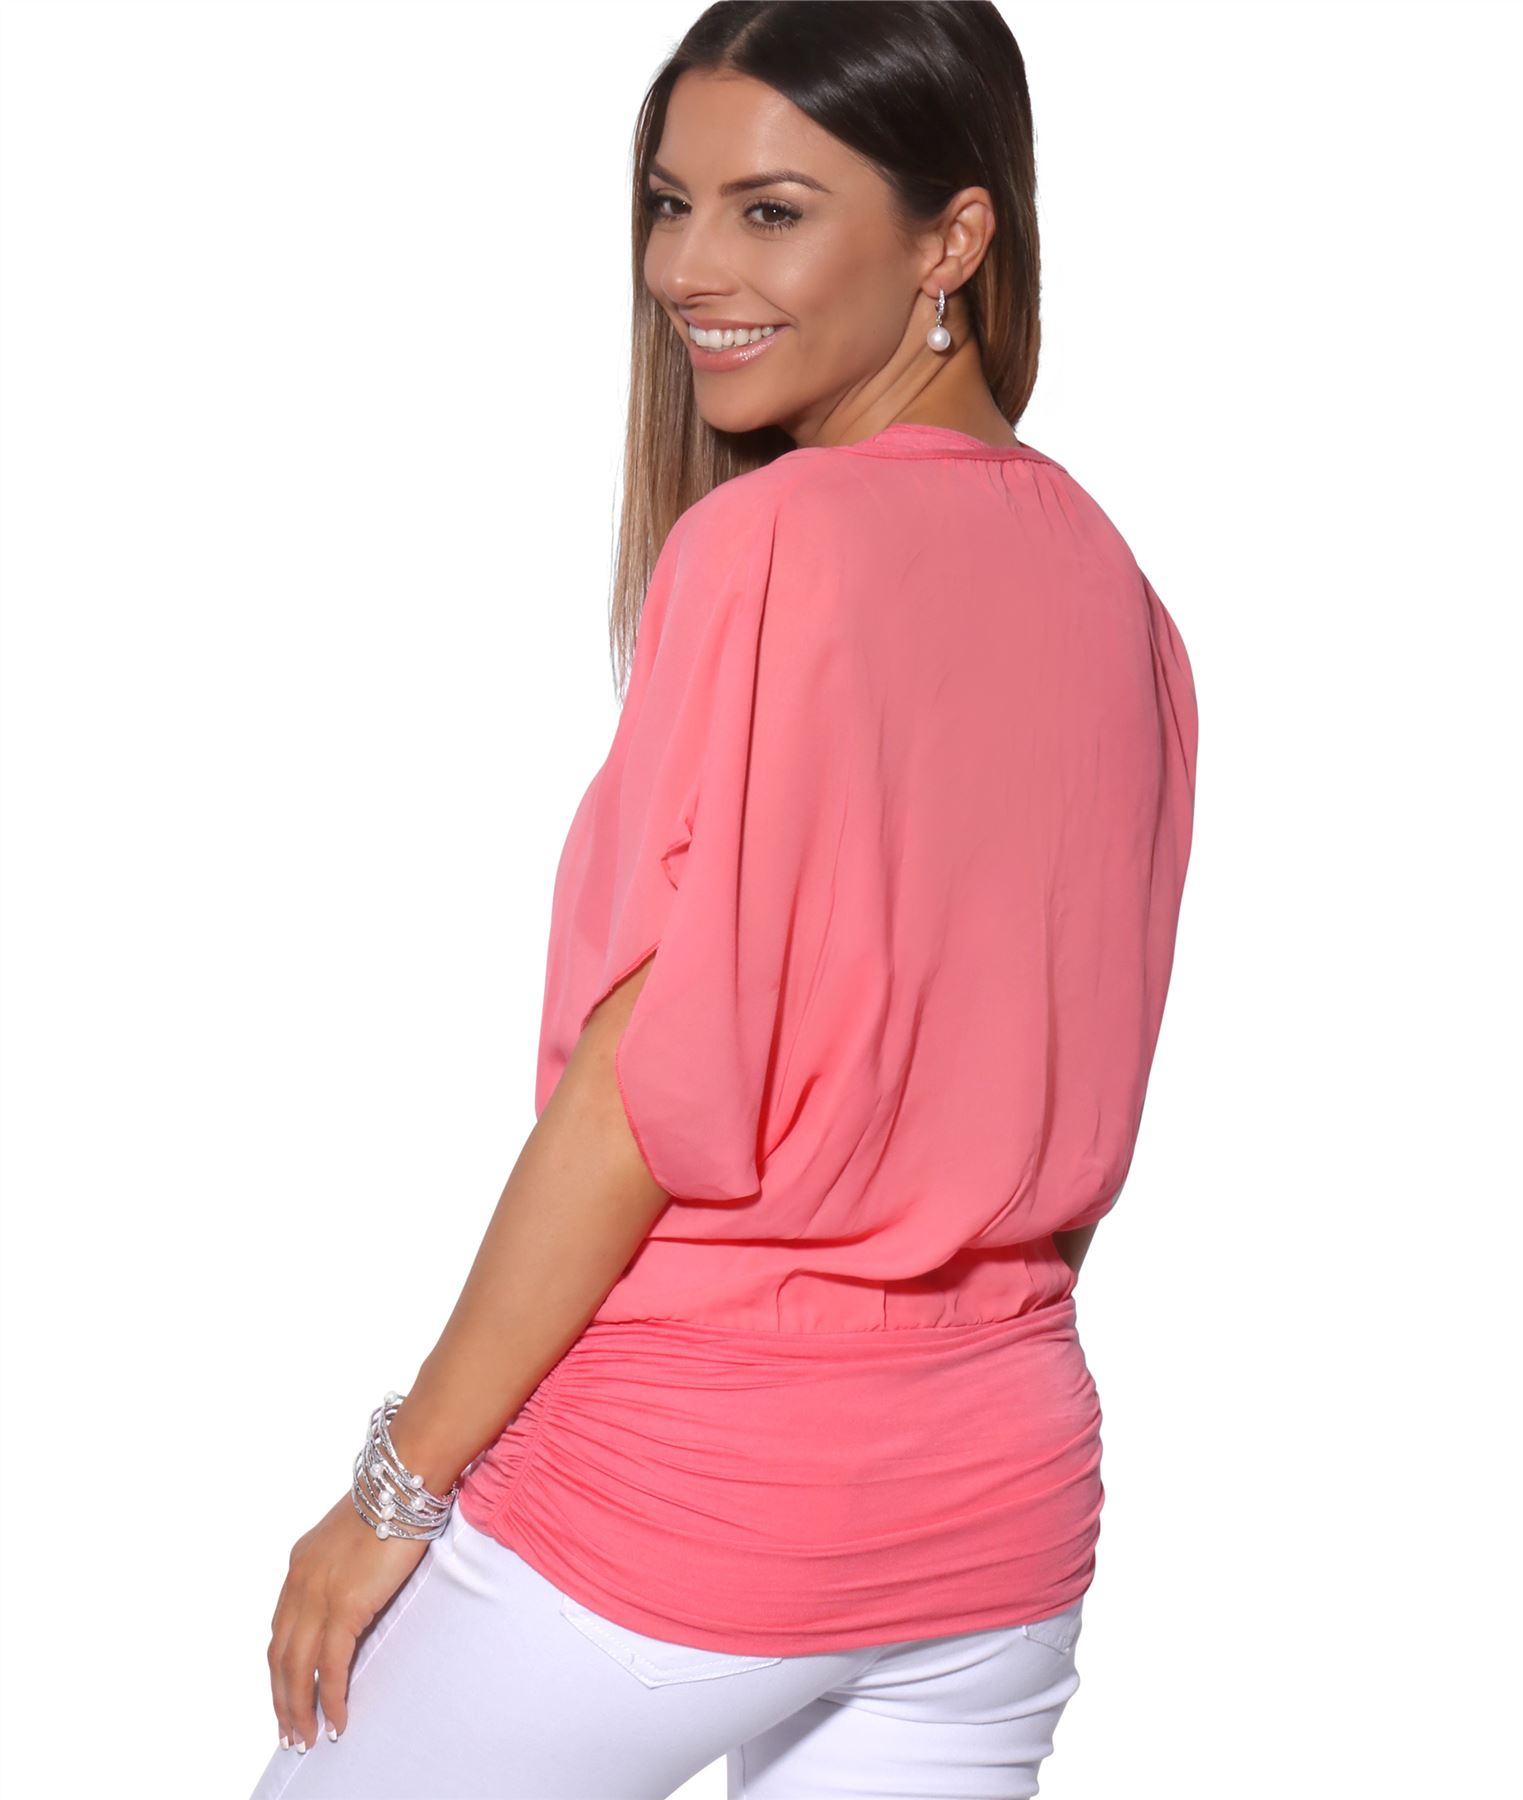 Womens-Scoop-Neck-Blouse-Baggy-Batwing-T-Shirt-Top-Ladies-Oversized-Chiffon-2in1 thumbnail 10